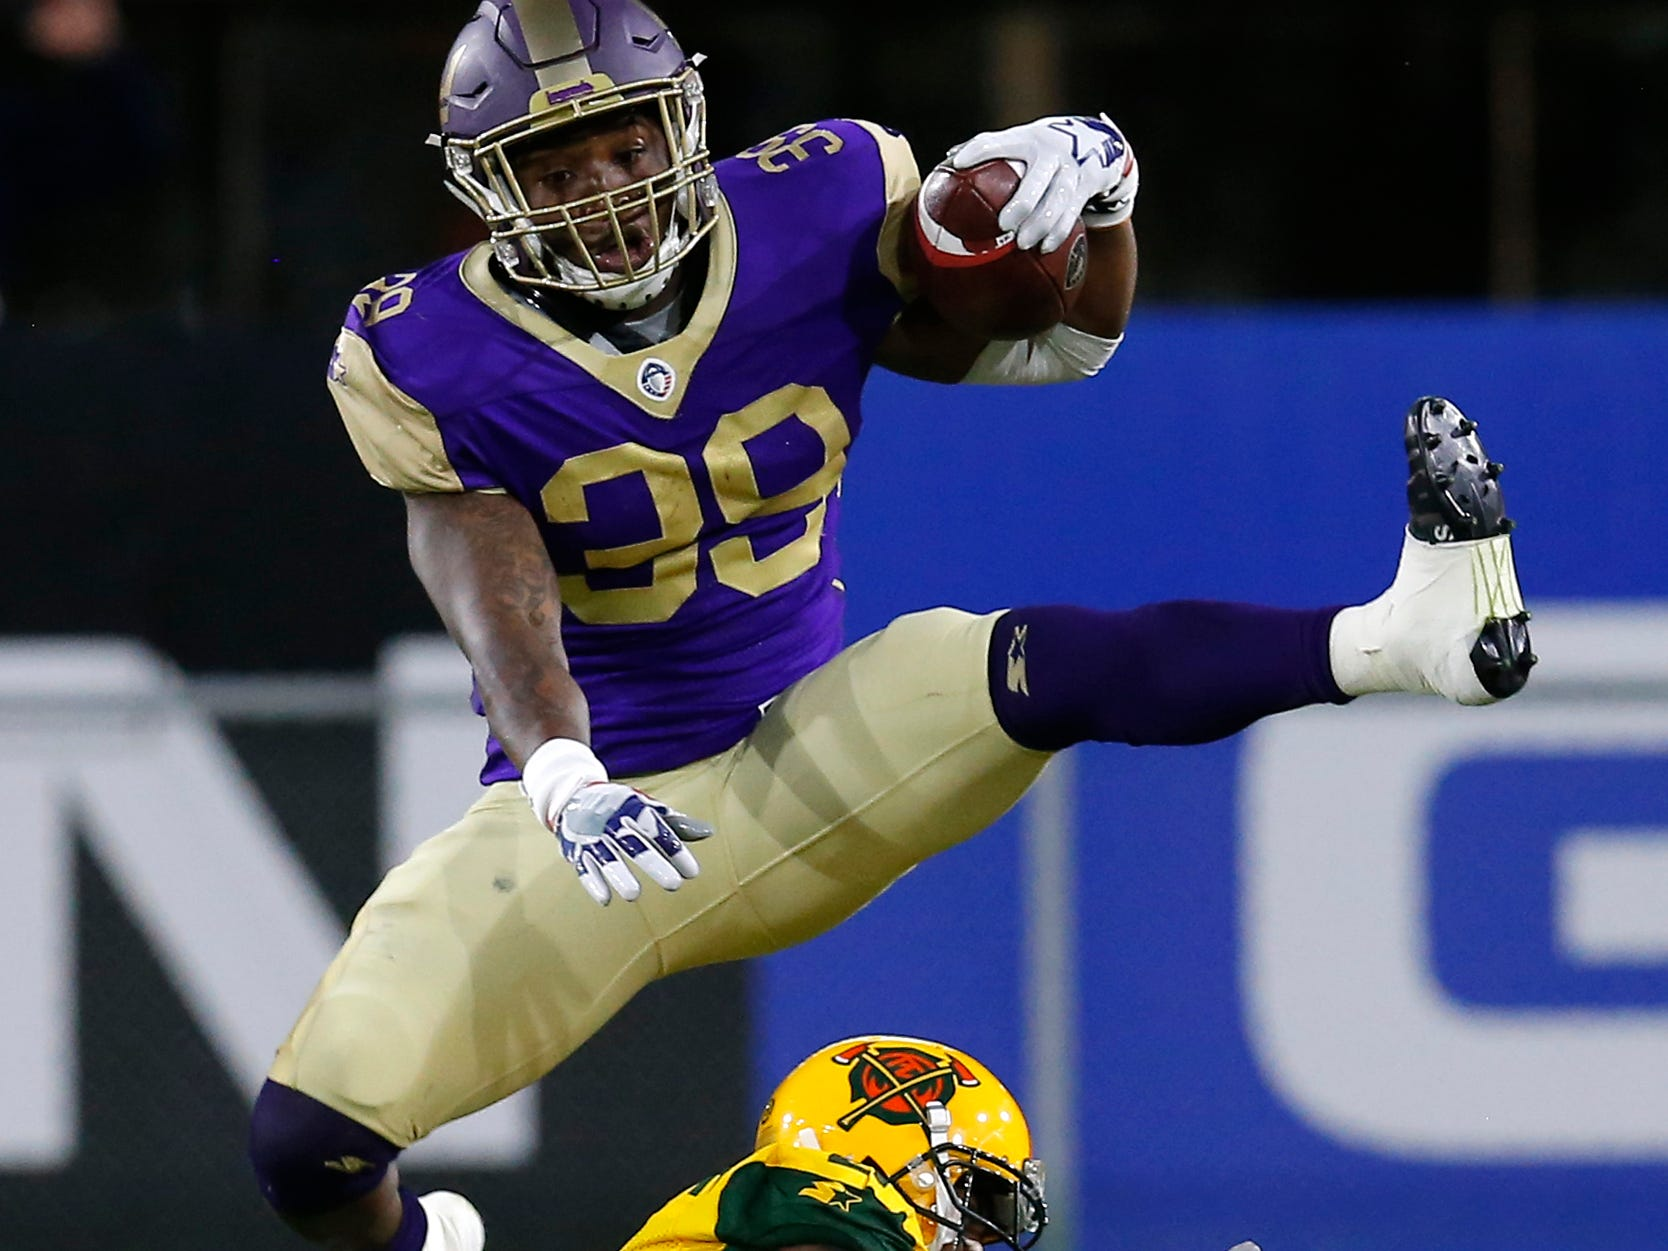 Atlanta Legends running back Brandon Radcliff (39) leaps over Arizona Hotshots defensive back Robert Nelson (21) in the first half during an AAF football game, Sunday, March 3, 2019, at Sun Devil Stadium in Phoenix.